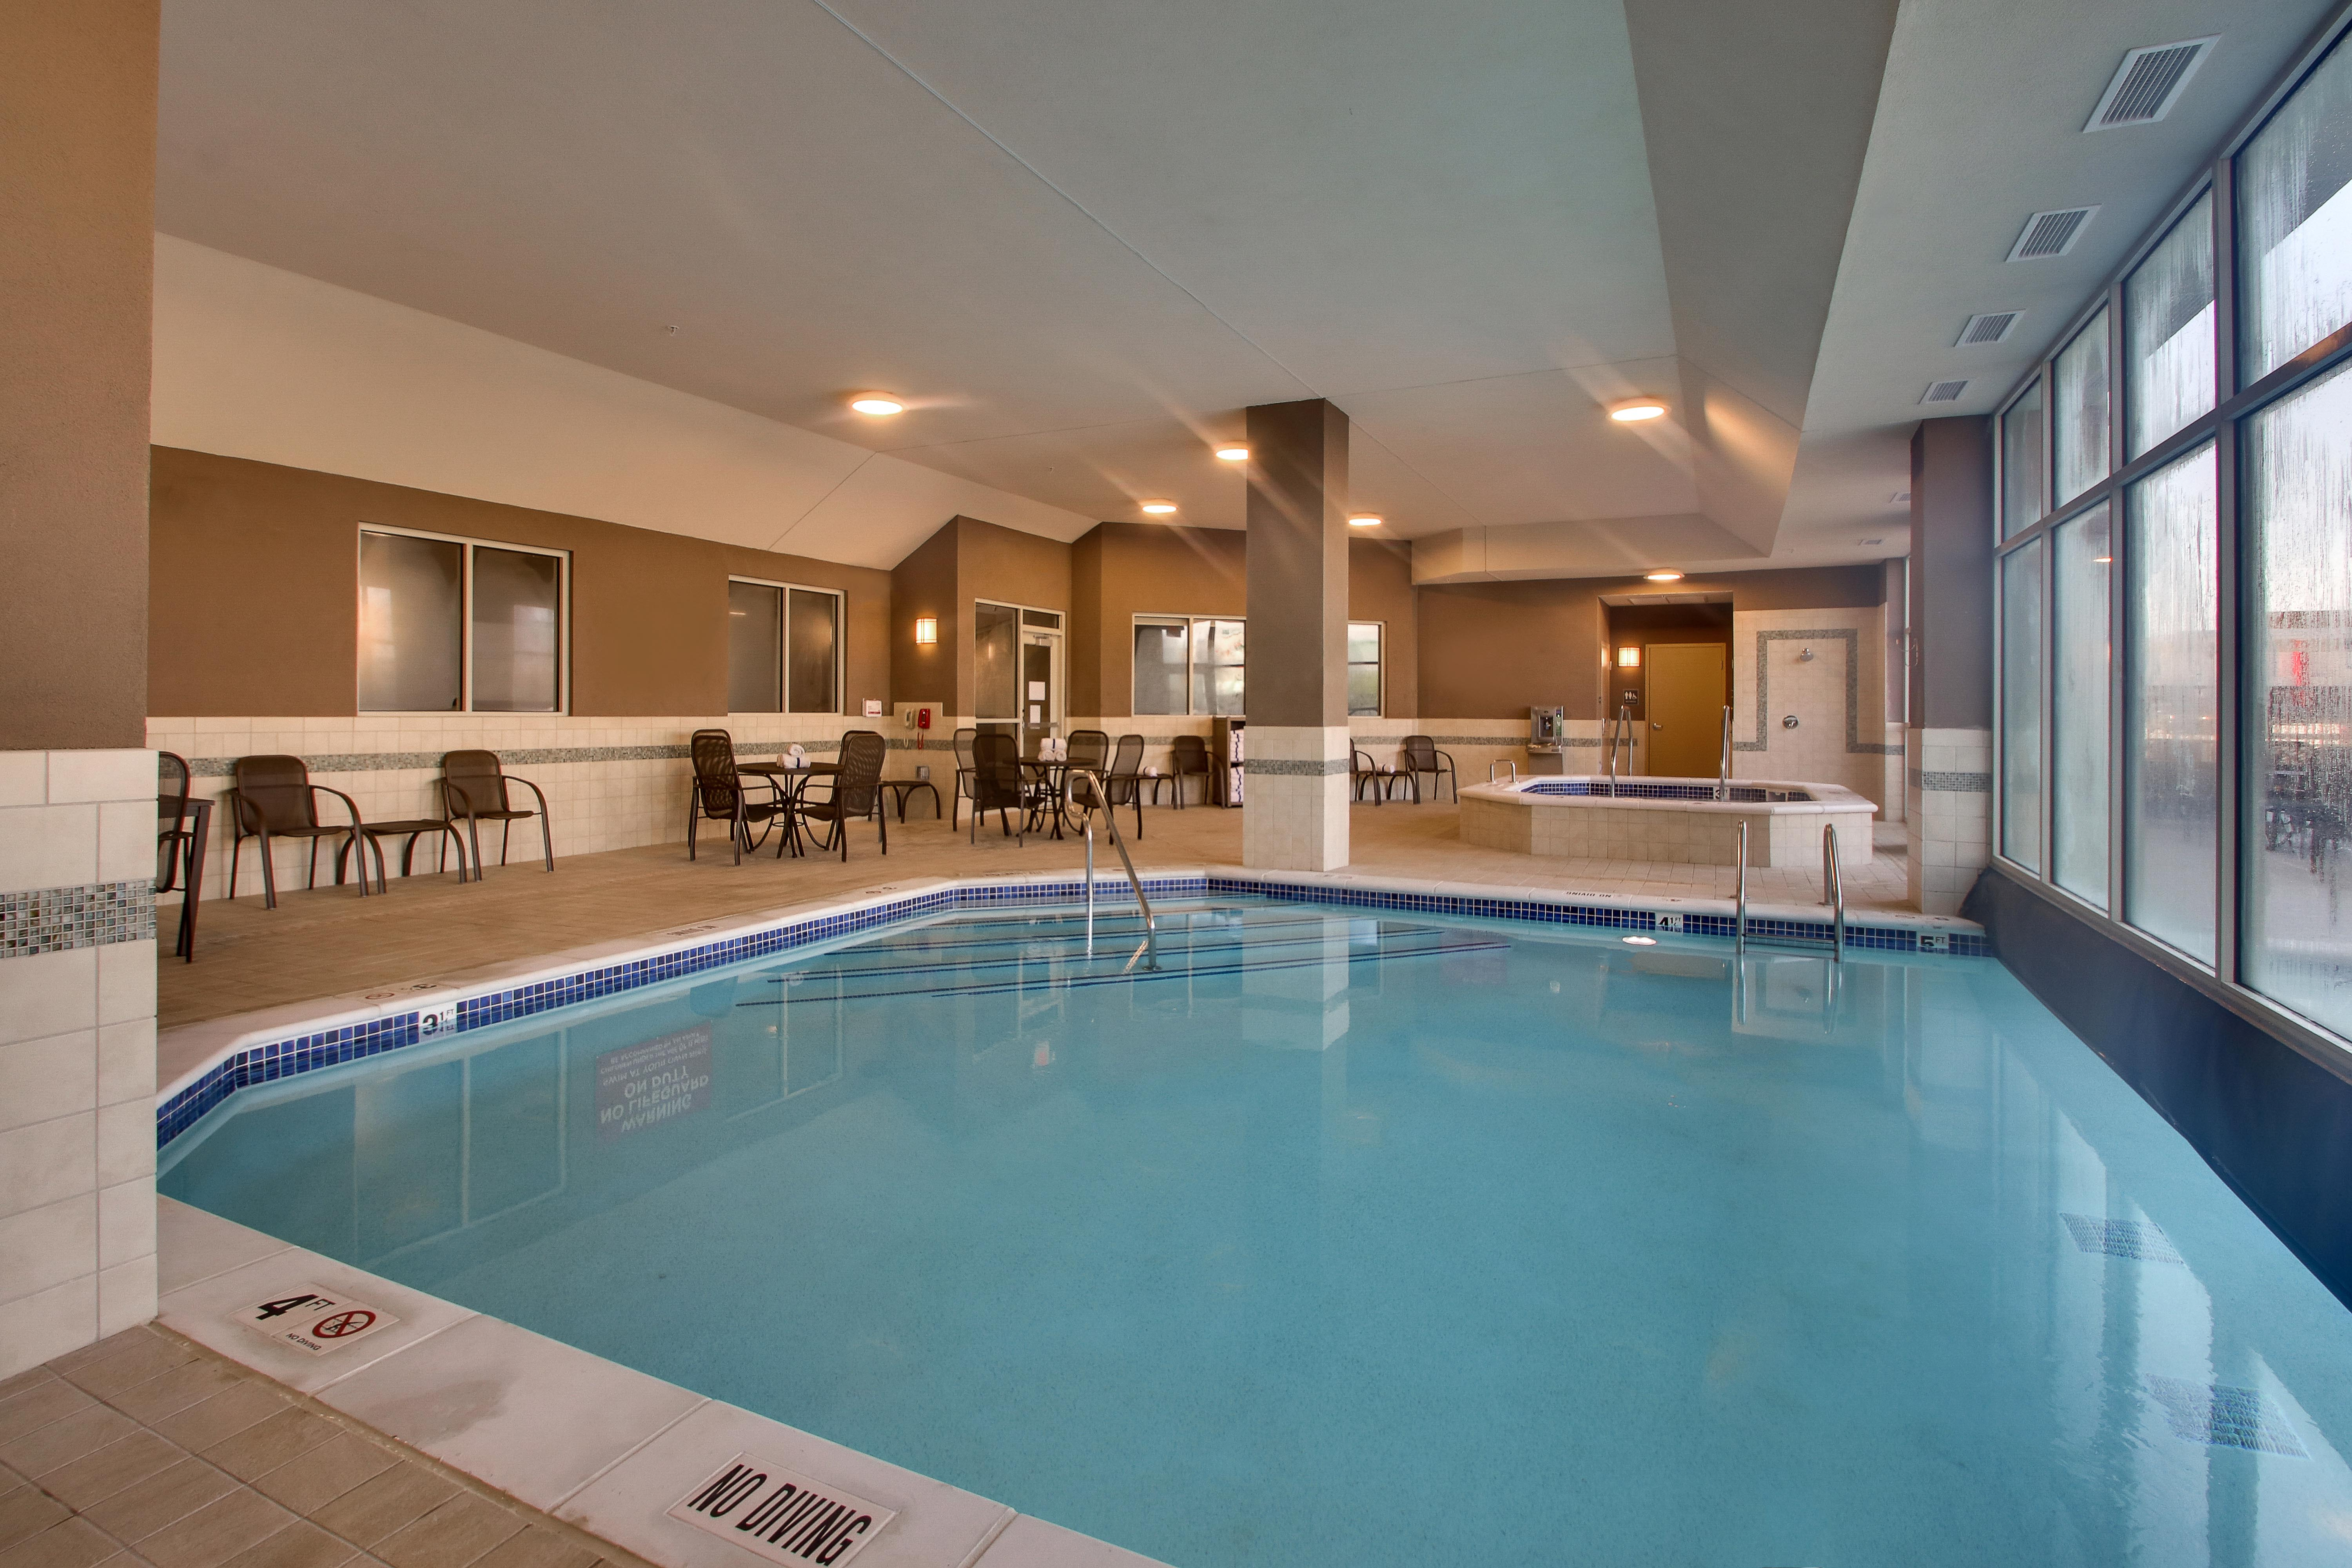 drury inn suites iowa city coralville drury hotels rh stlouisvacations com